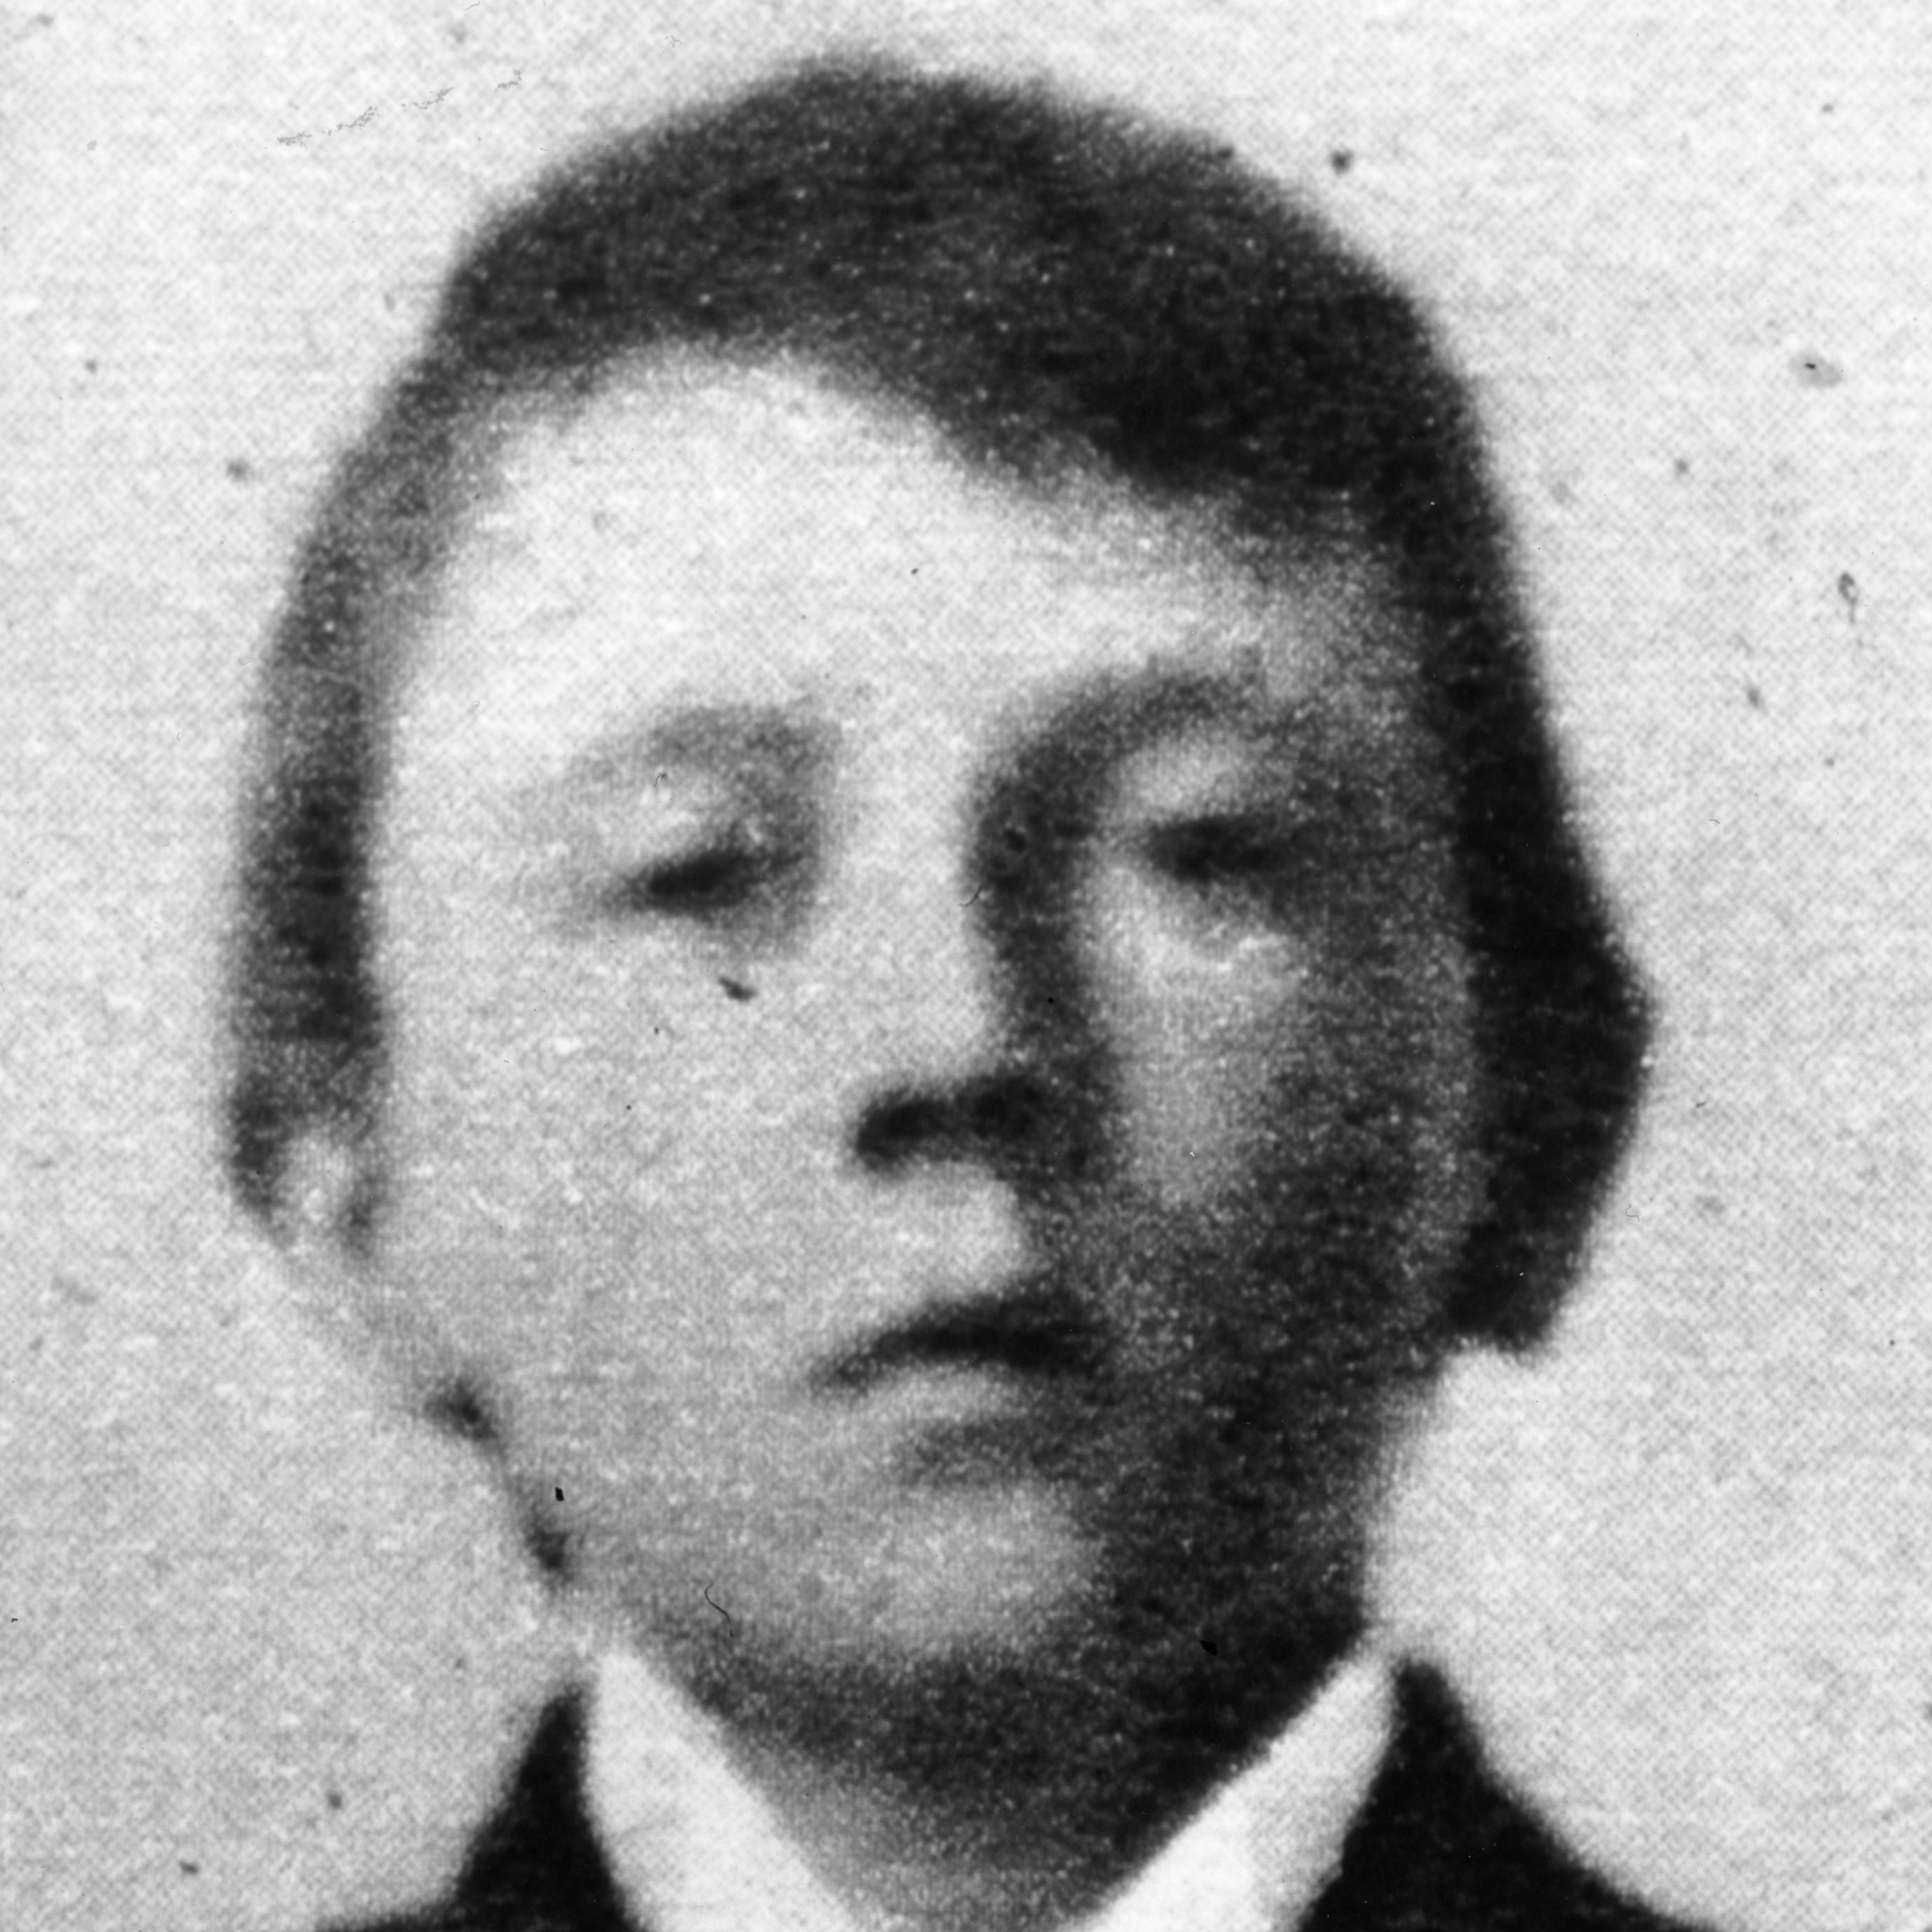 Austrian-born German dictator Adolf Hitler, as a 10-year-old boy.